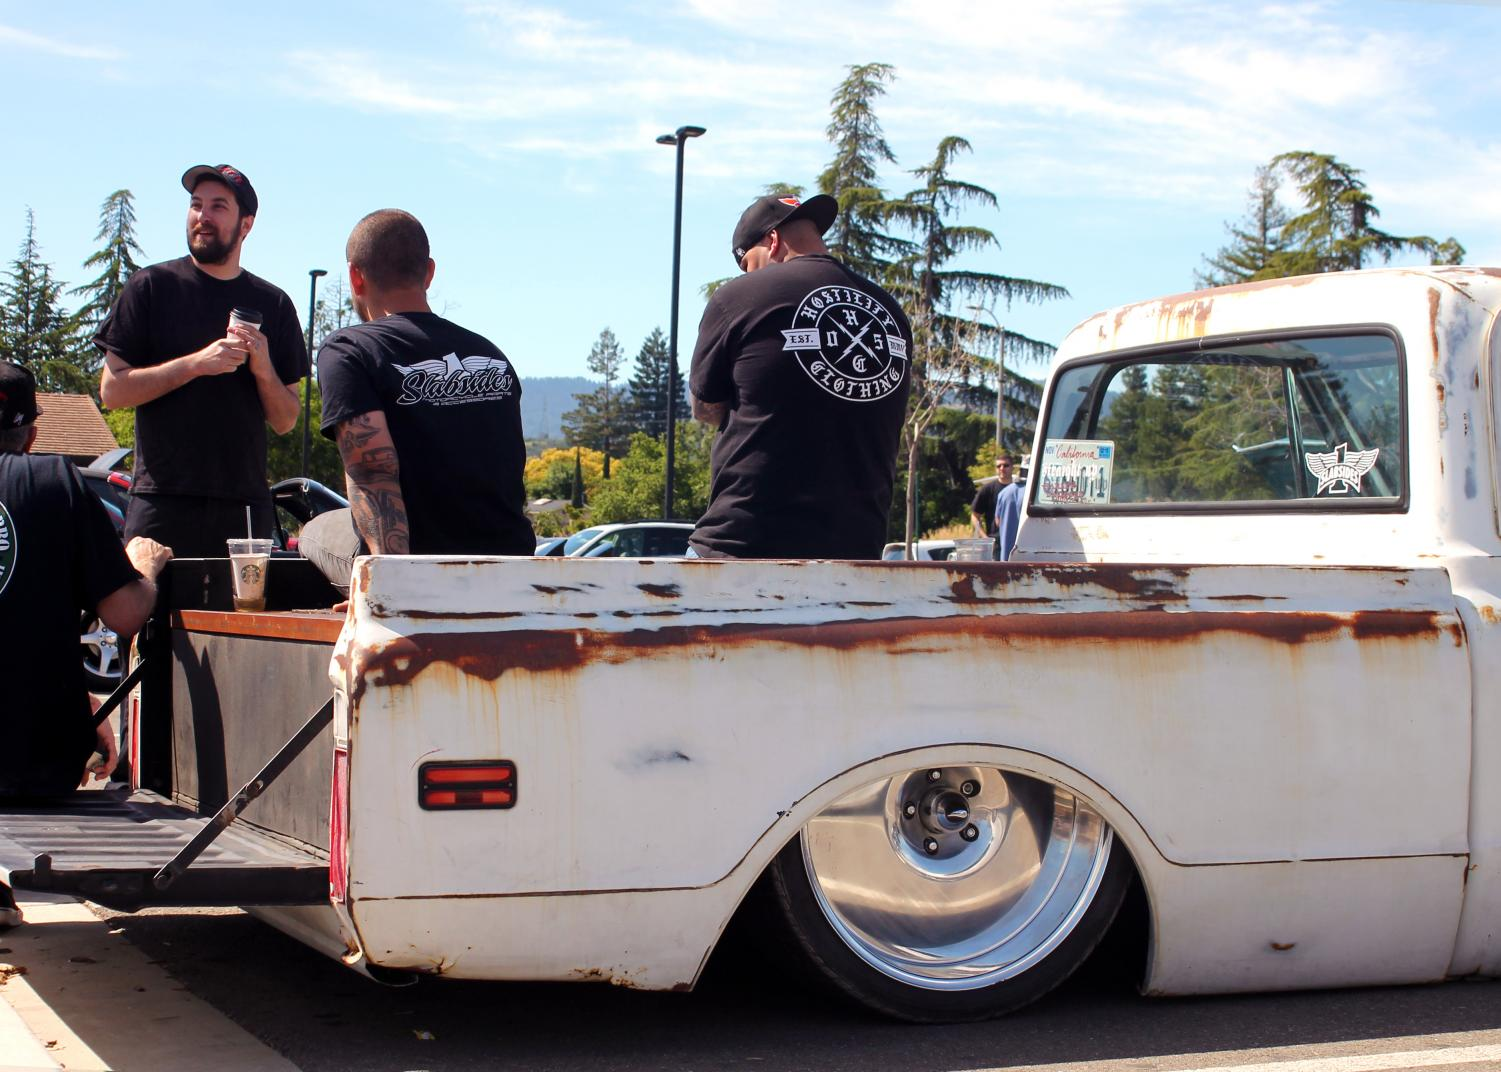 Car+lovers+sit+together+on+their+Chevrolet+C10+pickup+truck+circa+1970s.